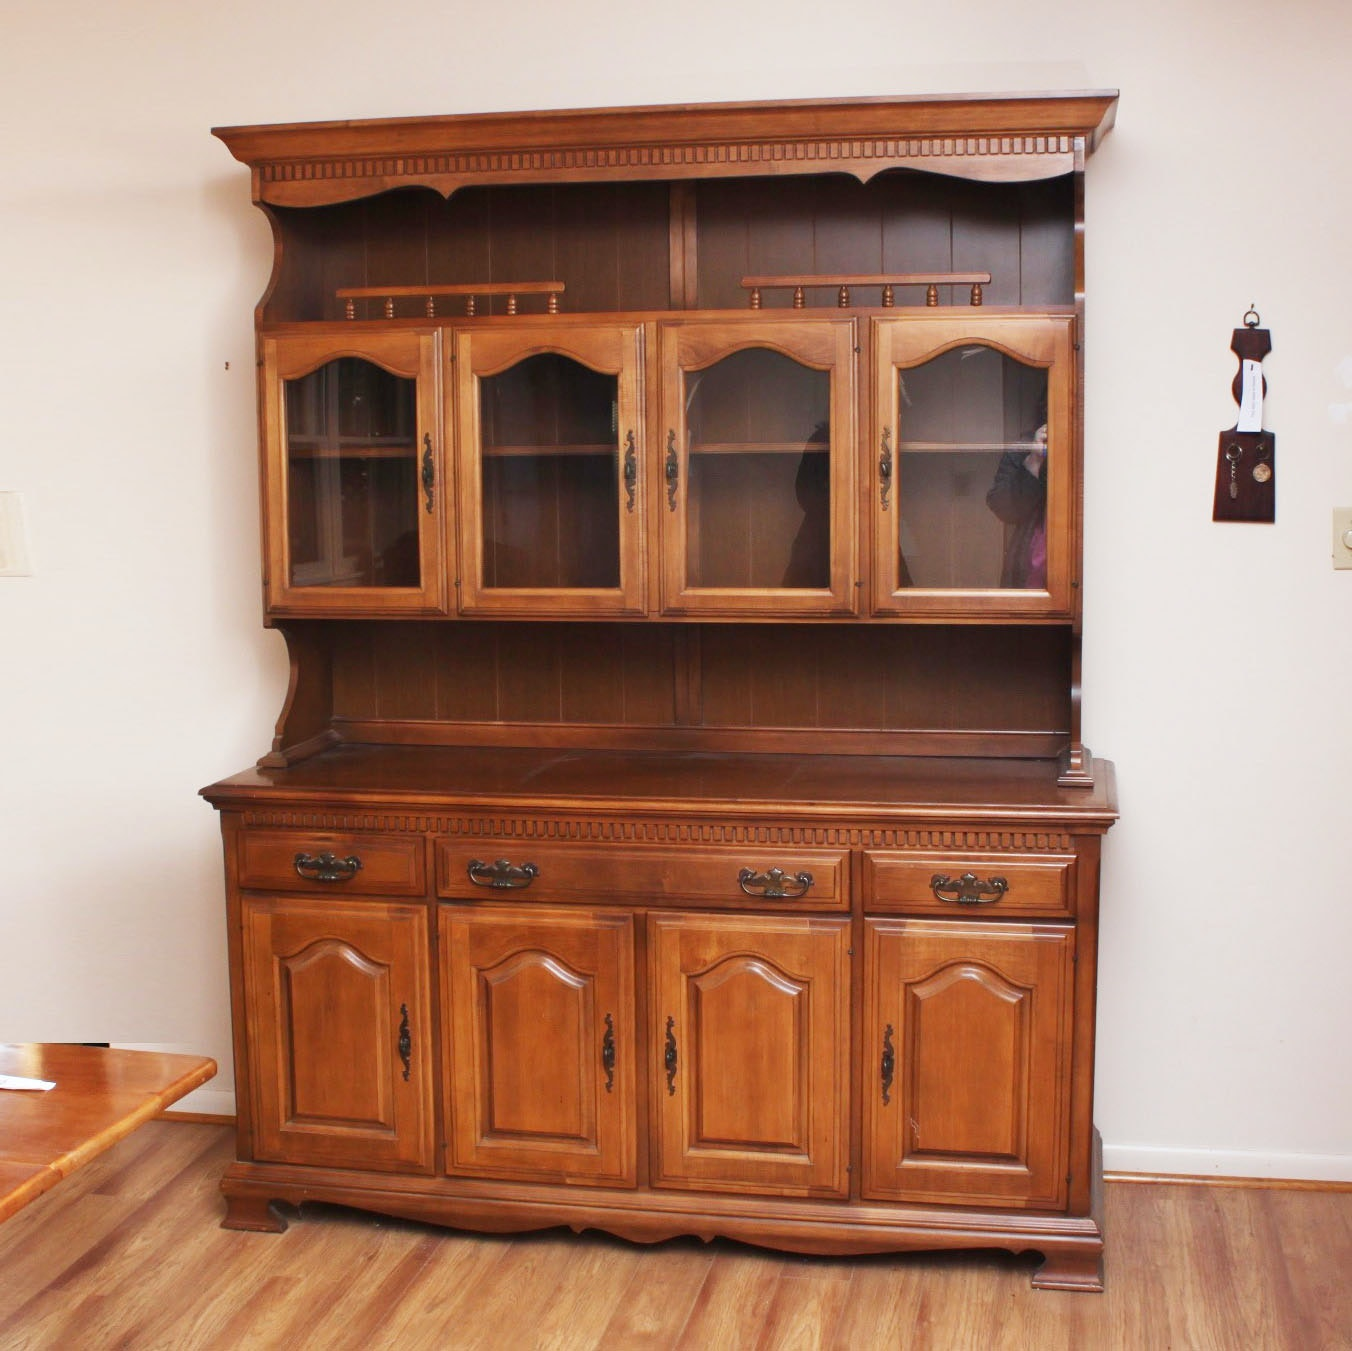 Early American Style Maple Hutch Cabinet and Buffet